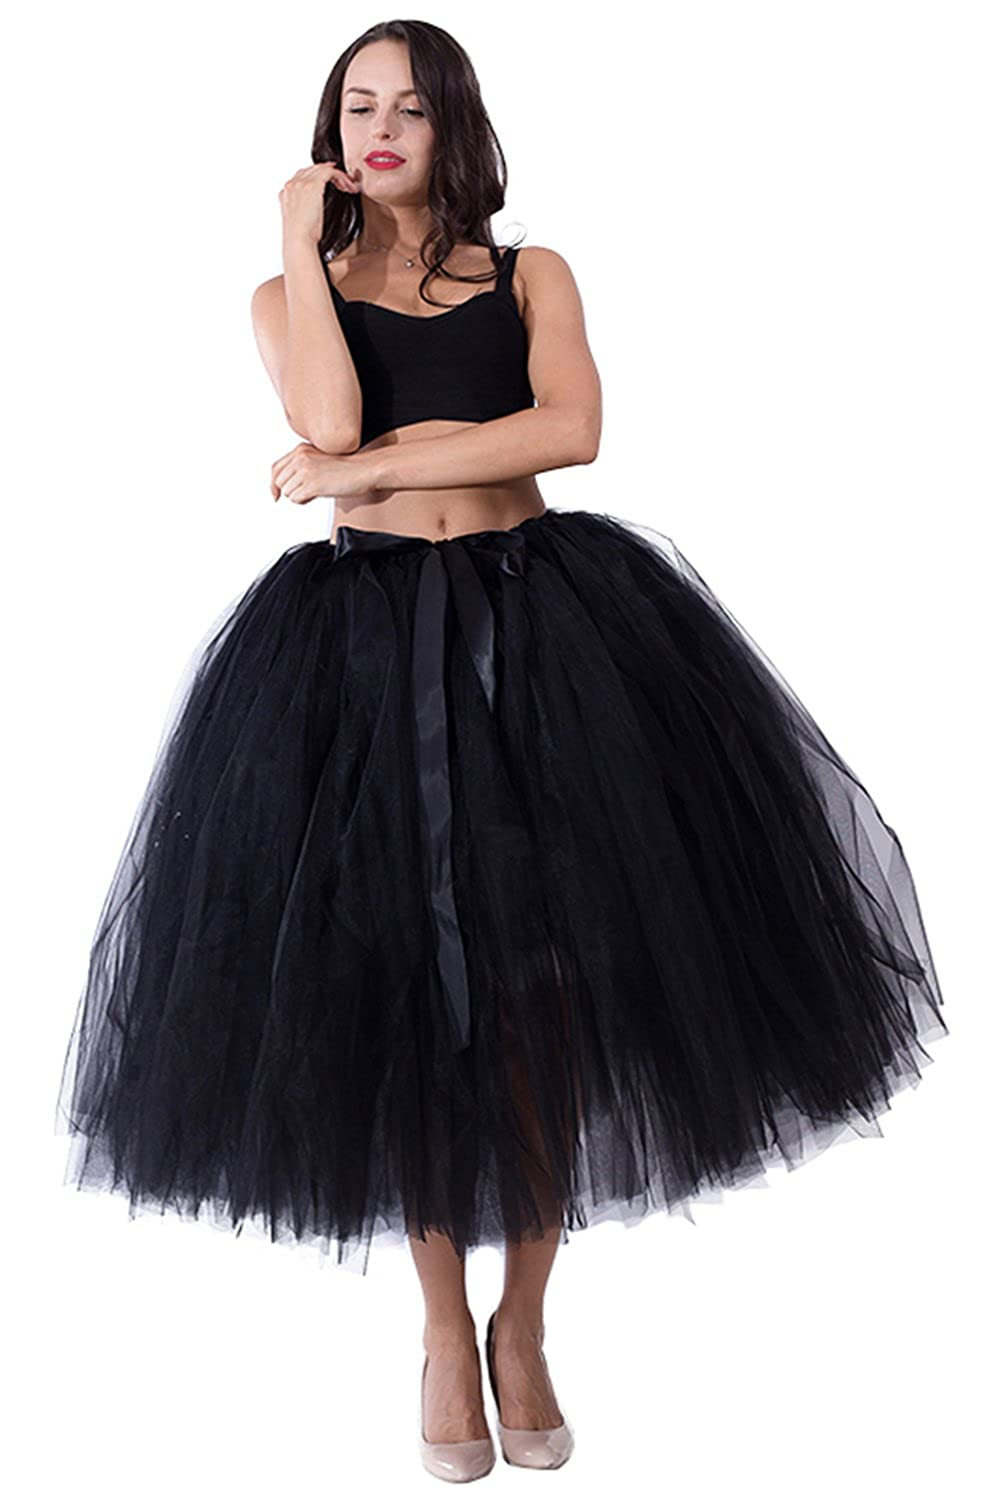 7a1a36780 Handmade Adult Tutu Tulle Skirt for Women 31.5 Inch Long Photography  Wedding Party Skirts Black at Amazon Women's Clothing store: